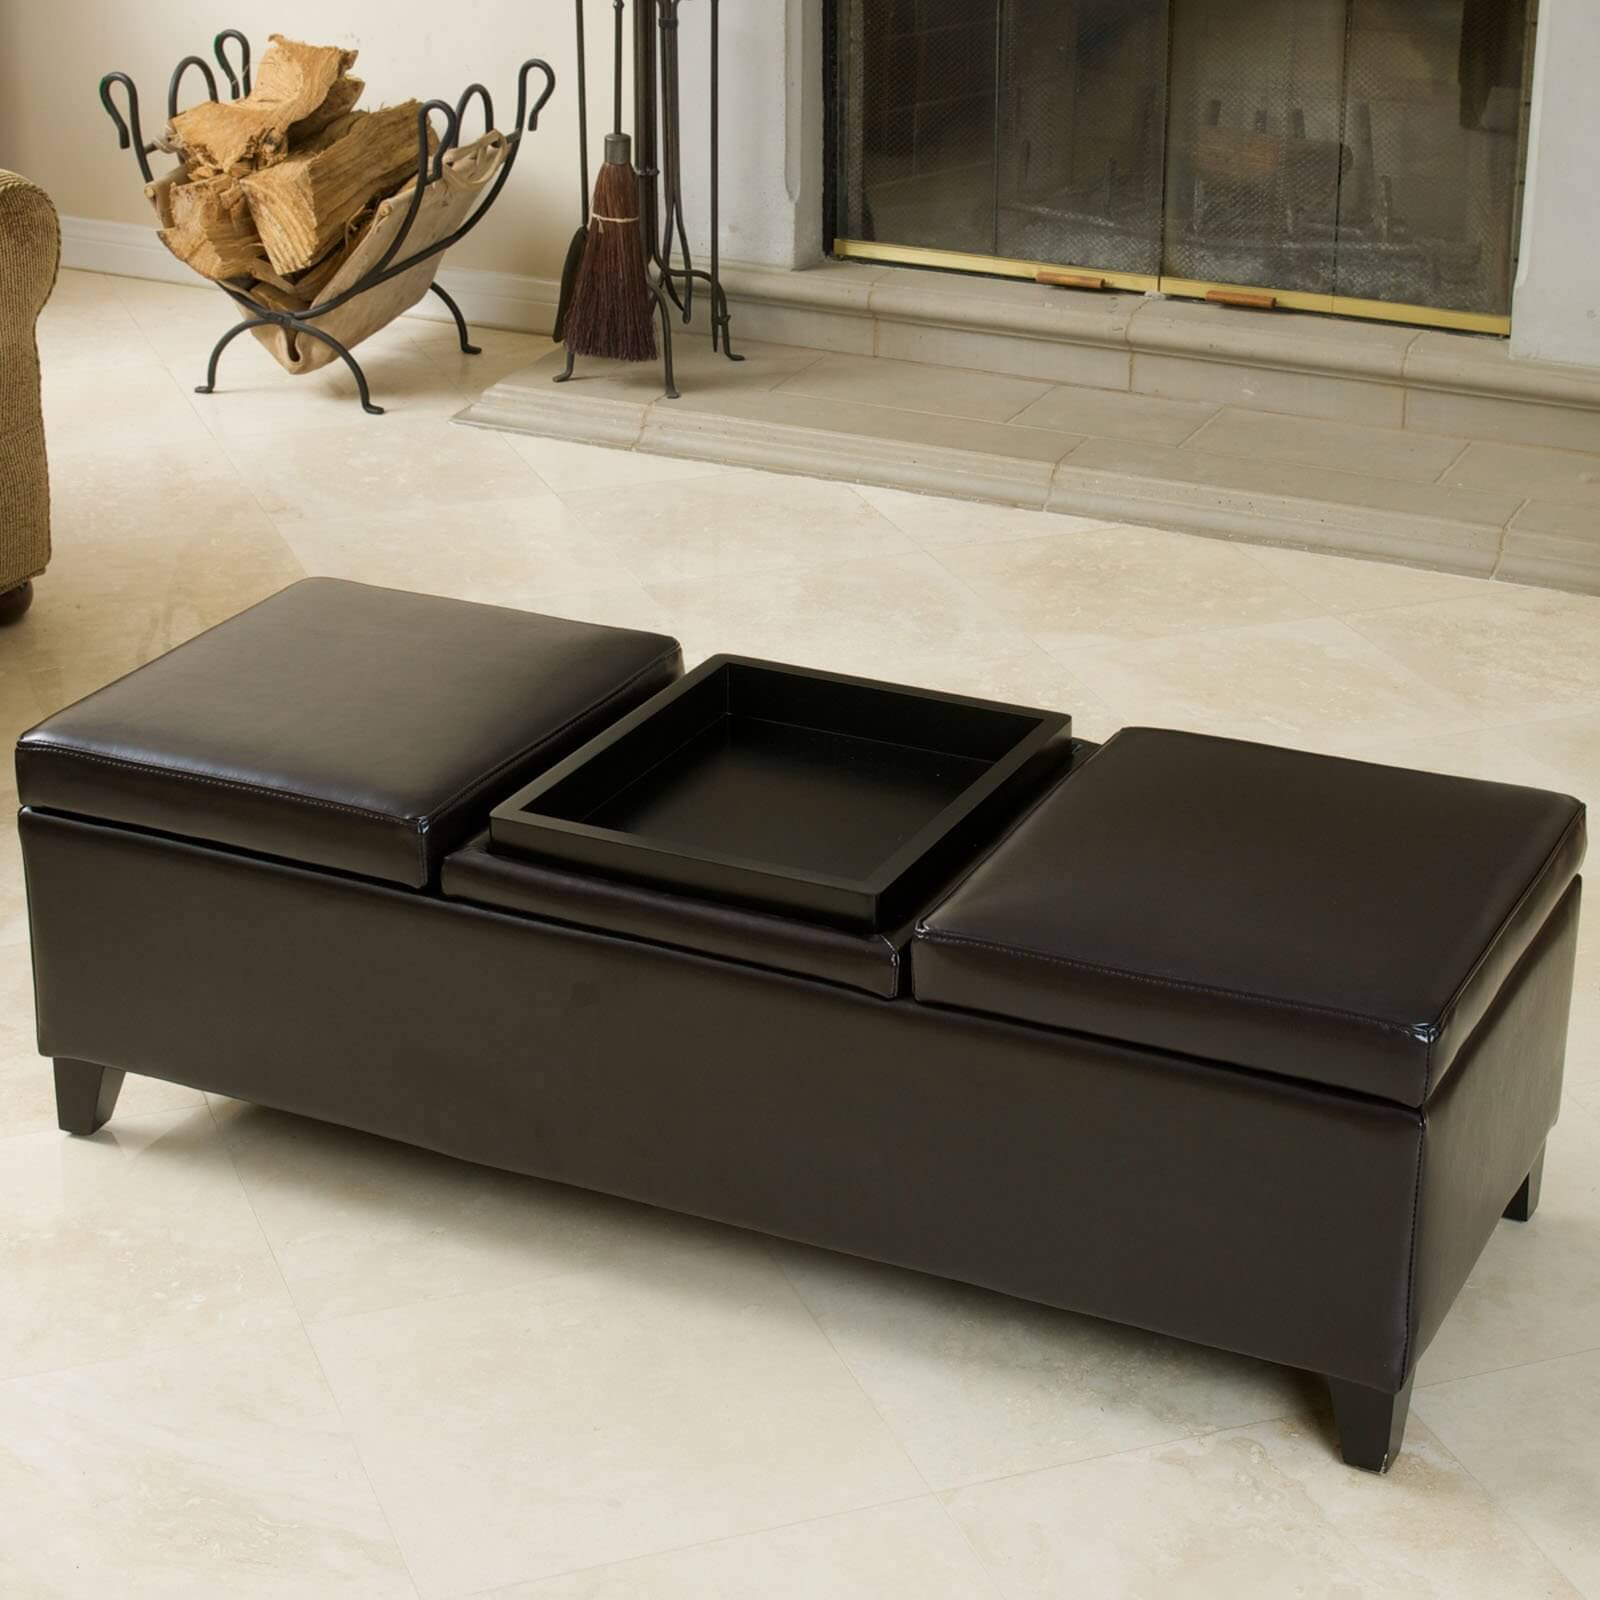 Topped Bench Ottoman Features Flippable Center Cushion For Tray Table